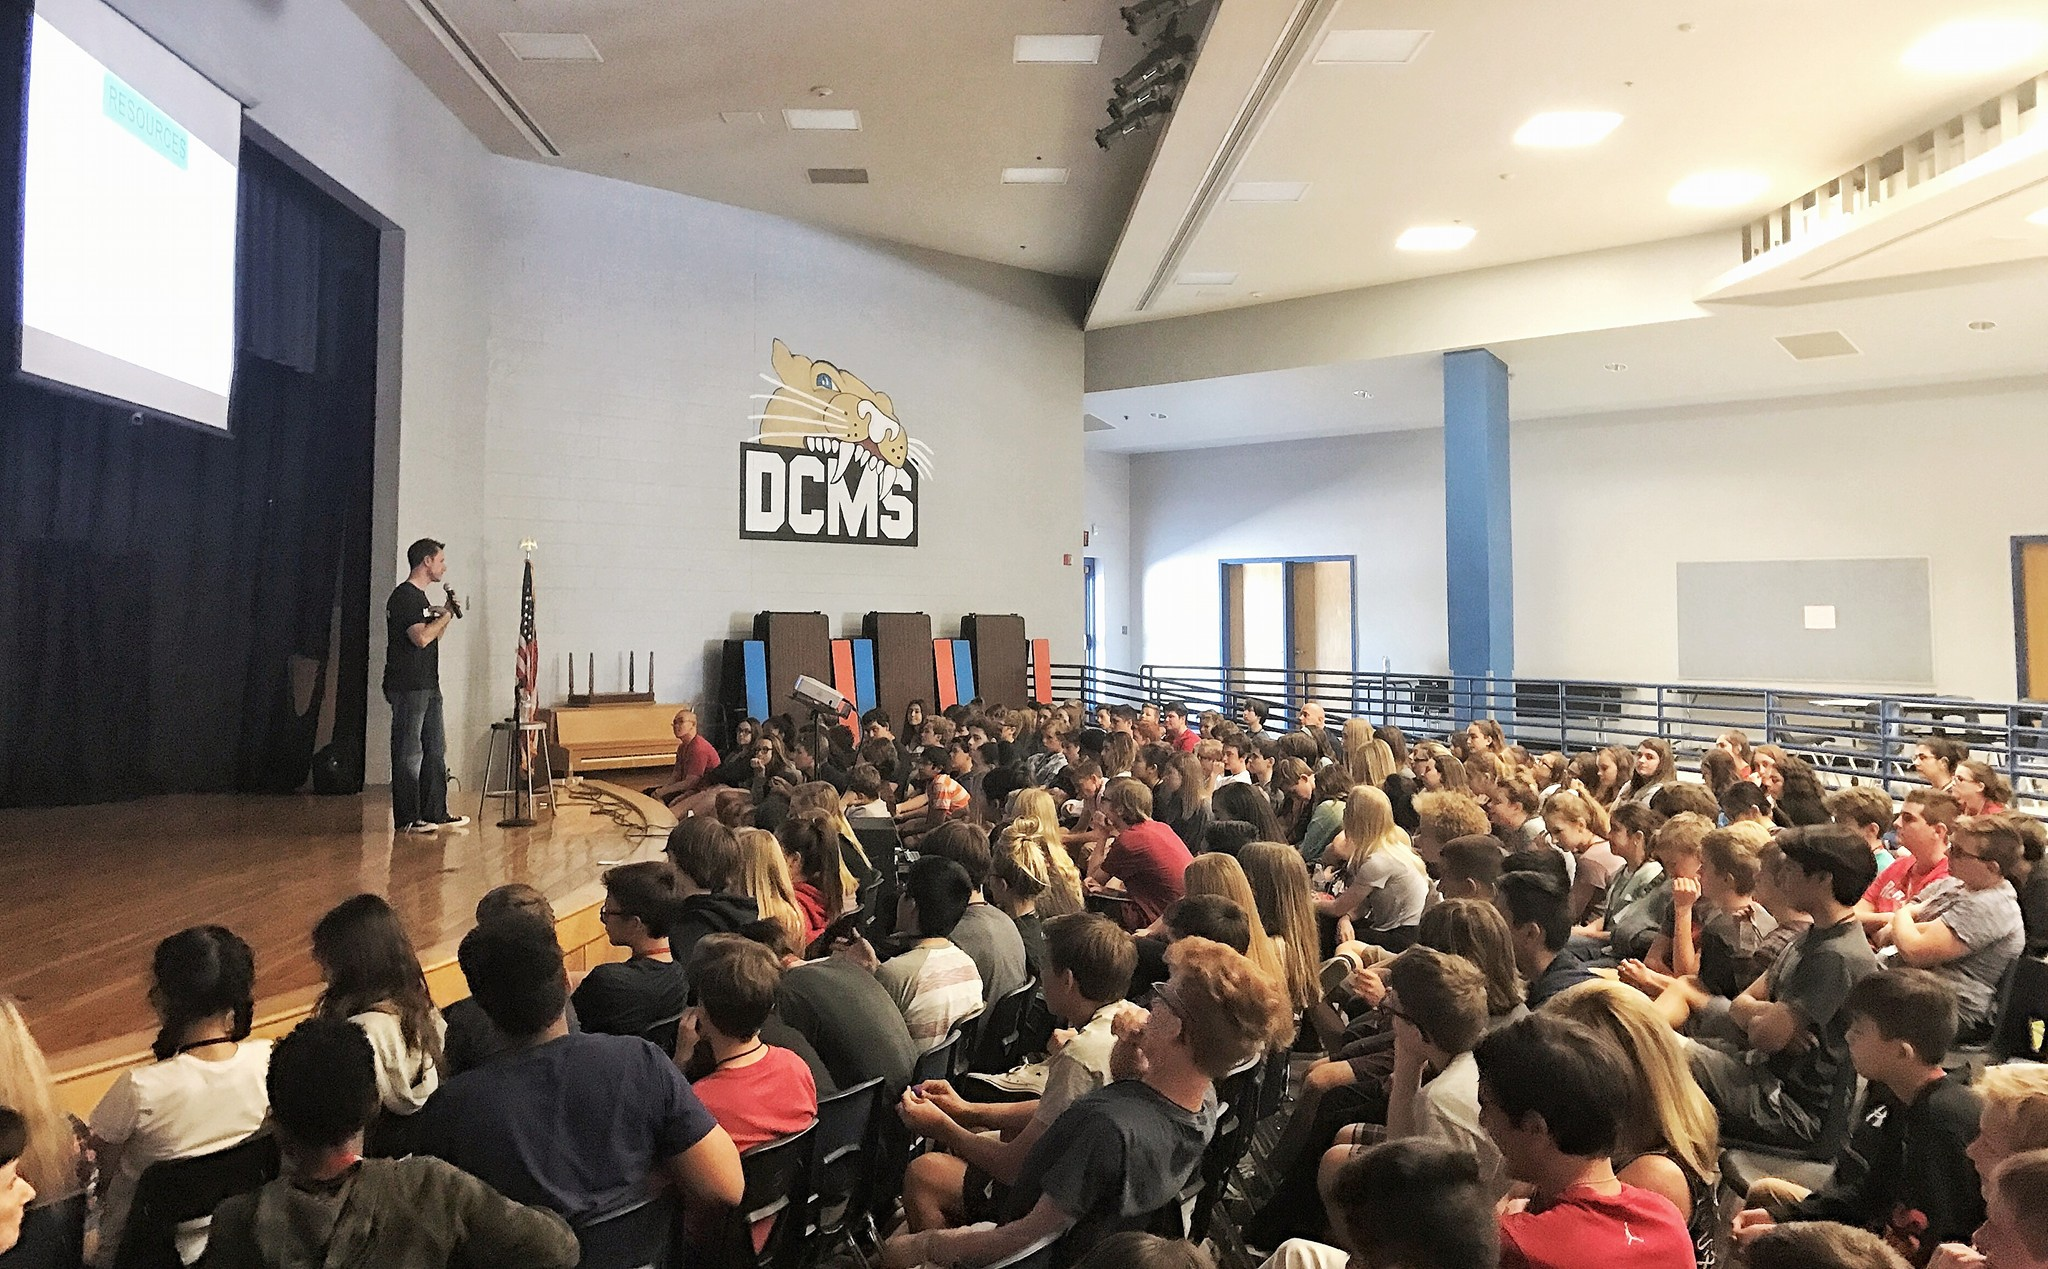 On stage at a local school